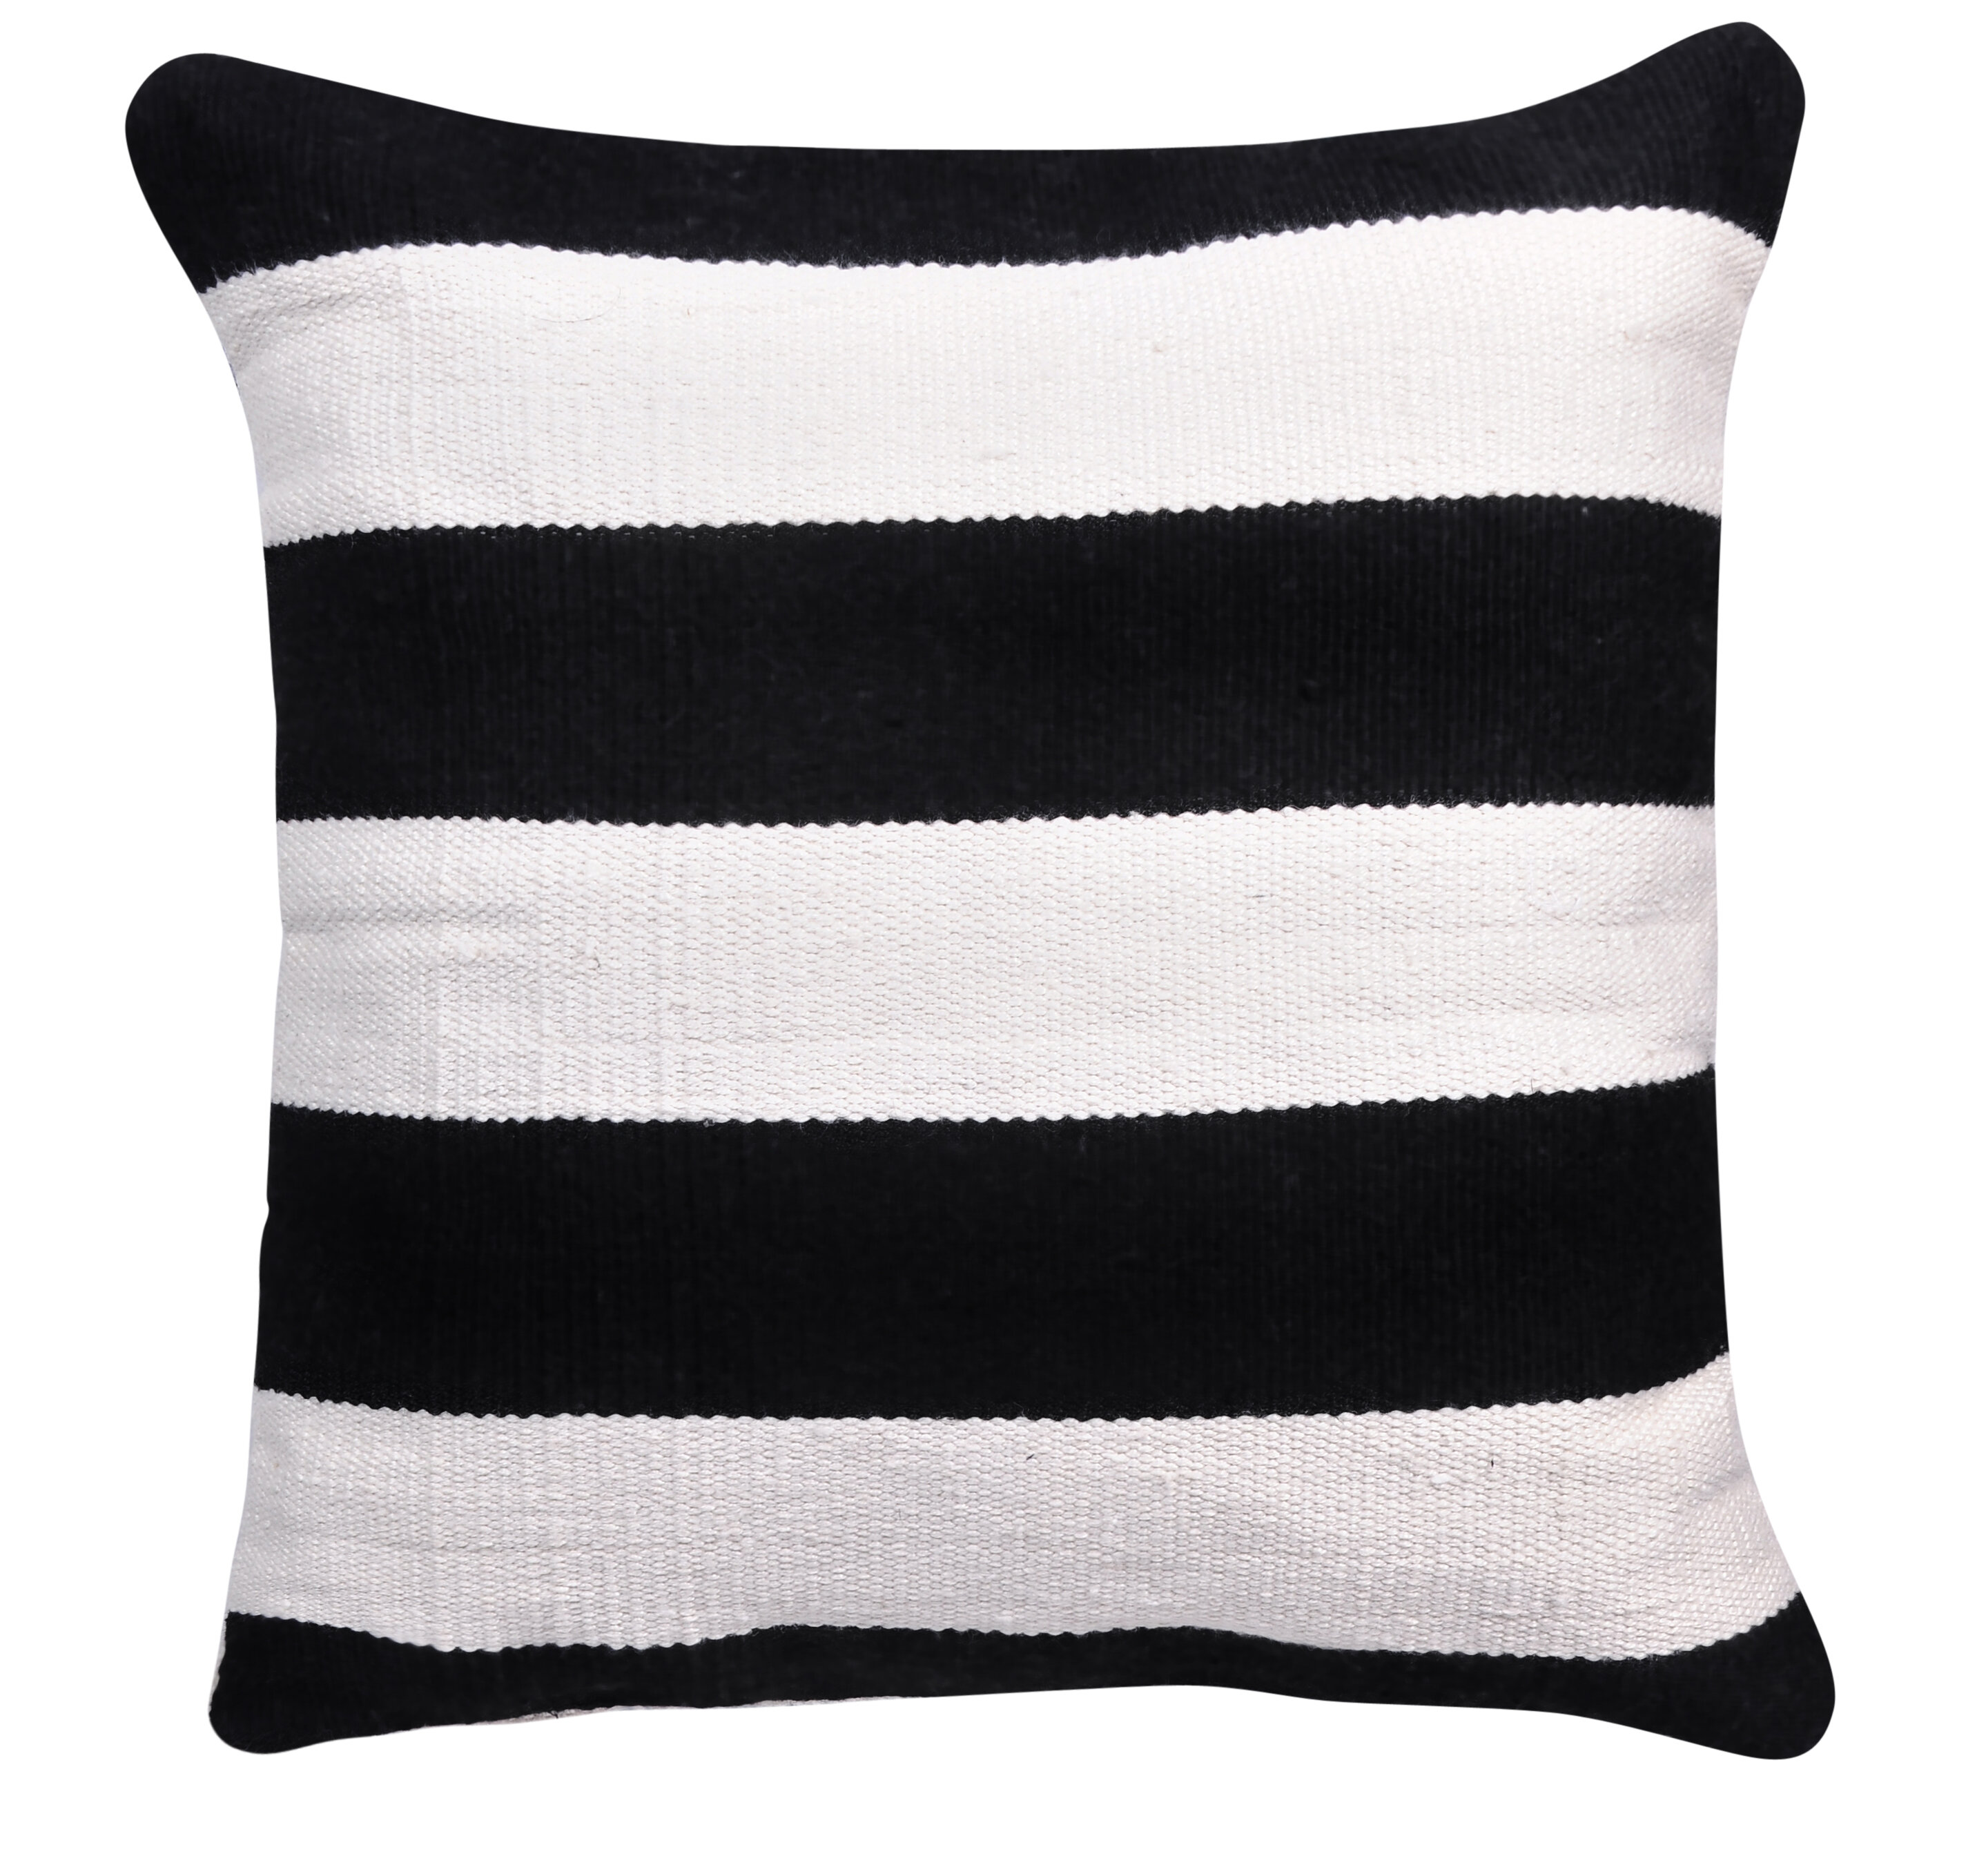 Longshore Tides Anniedale Decorative Indoor Outdoor Striped Throw Pillow Black And White 20 X 20 Wayfair